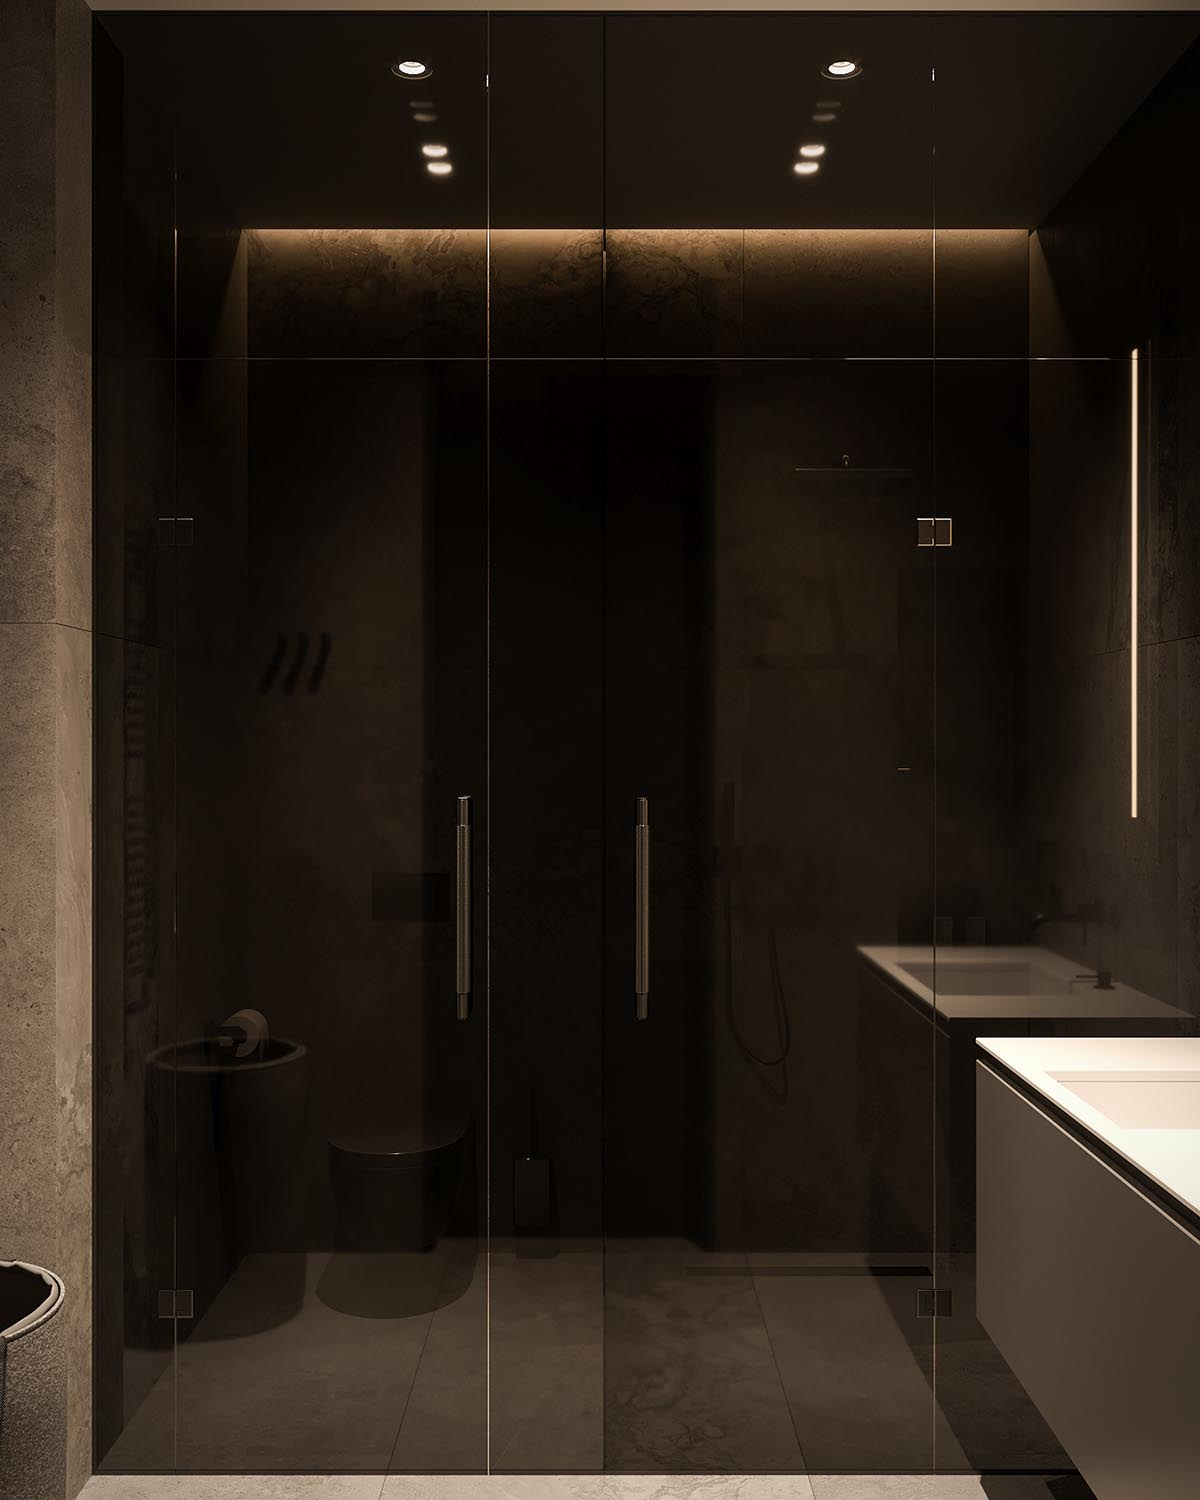 A modern bathroom with a white vanity, large format tiles, and black accents, like a tinted glass shower door.